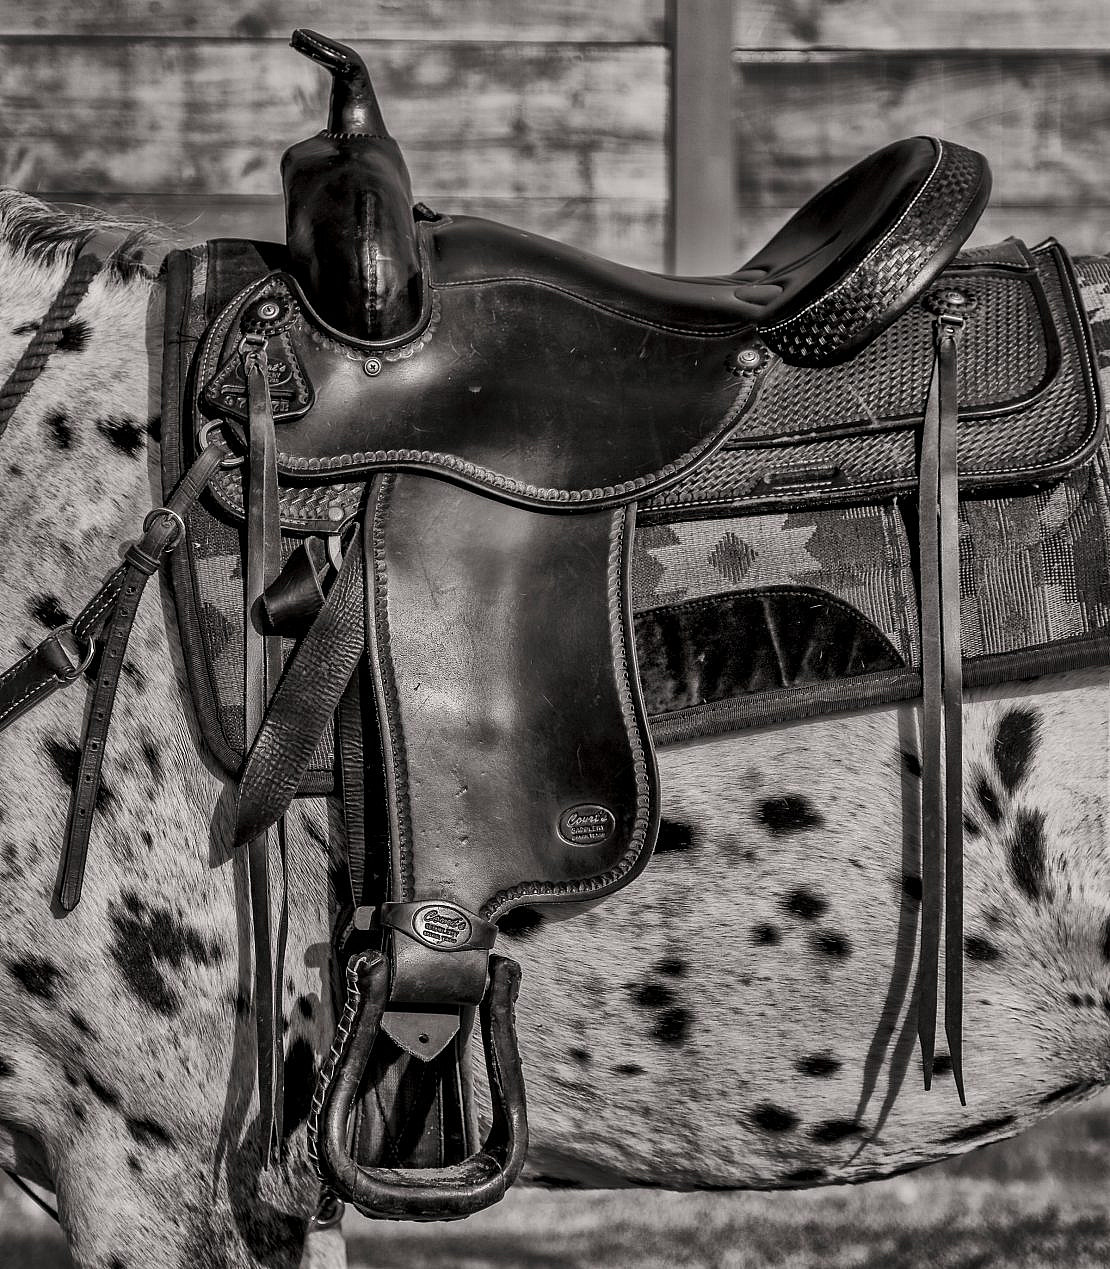 Saddle up! A look at the history and craftmanship of saddlery